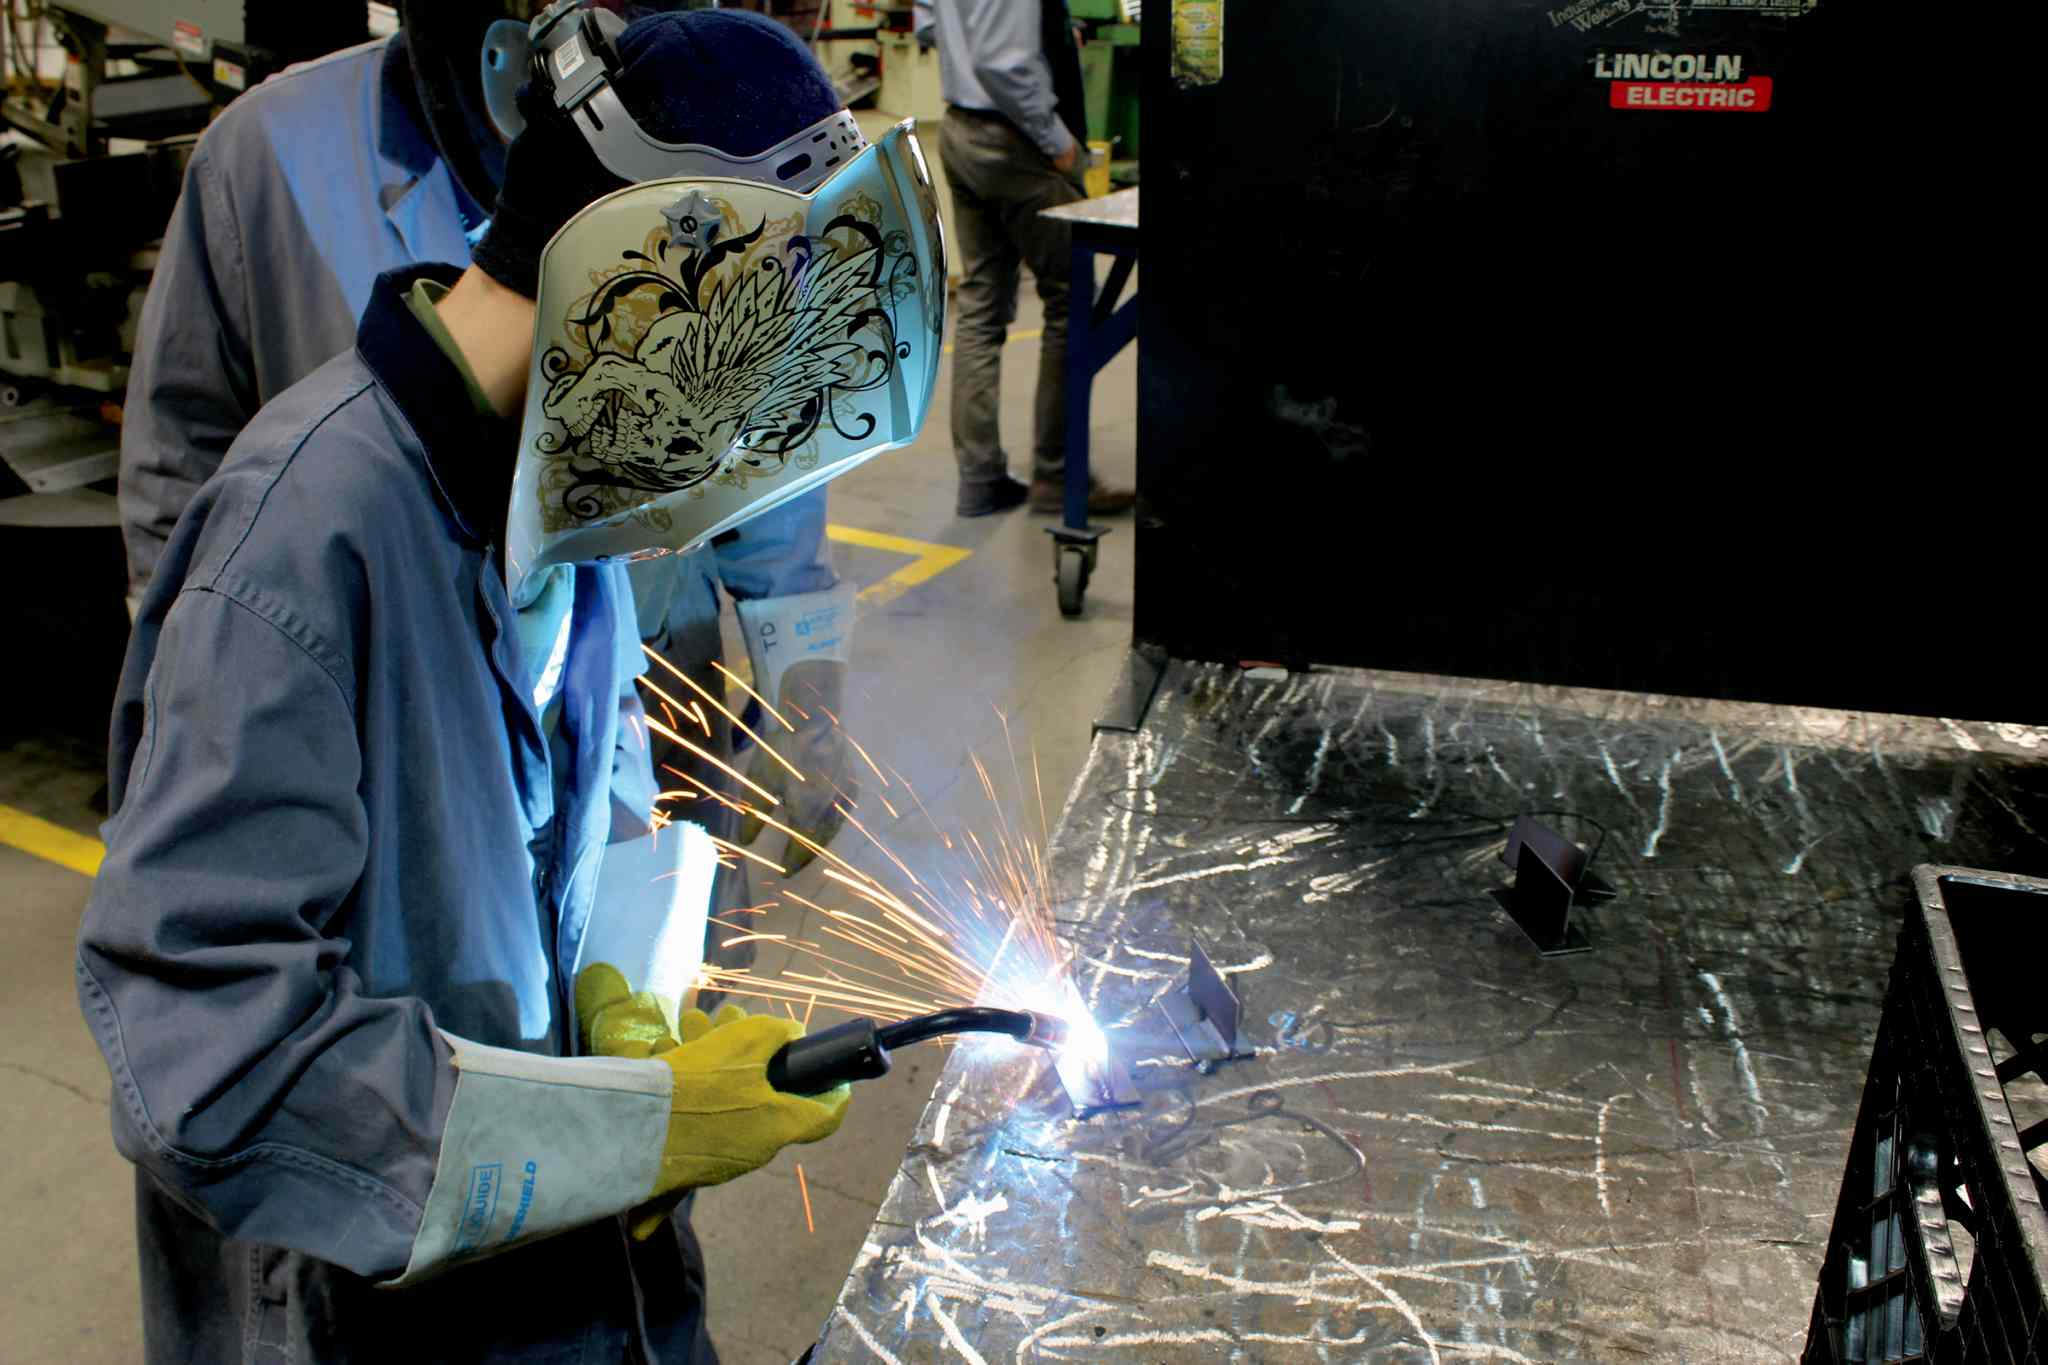 Sparks fly as Liam Drummond, a Grade 8 student at Linden Meadows School, works on a project in Winnipeg Technical College's welding classroom during a day of hands-on experience for students in the Pembina Trails school division.